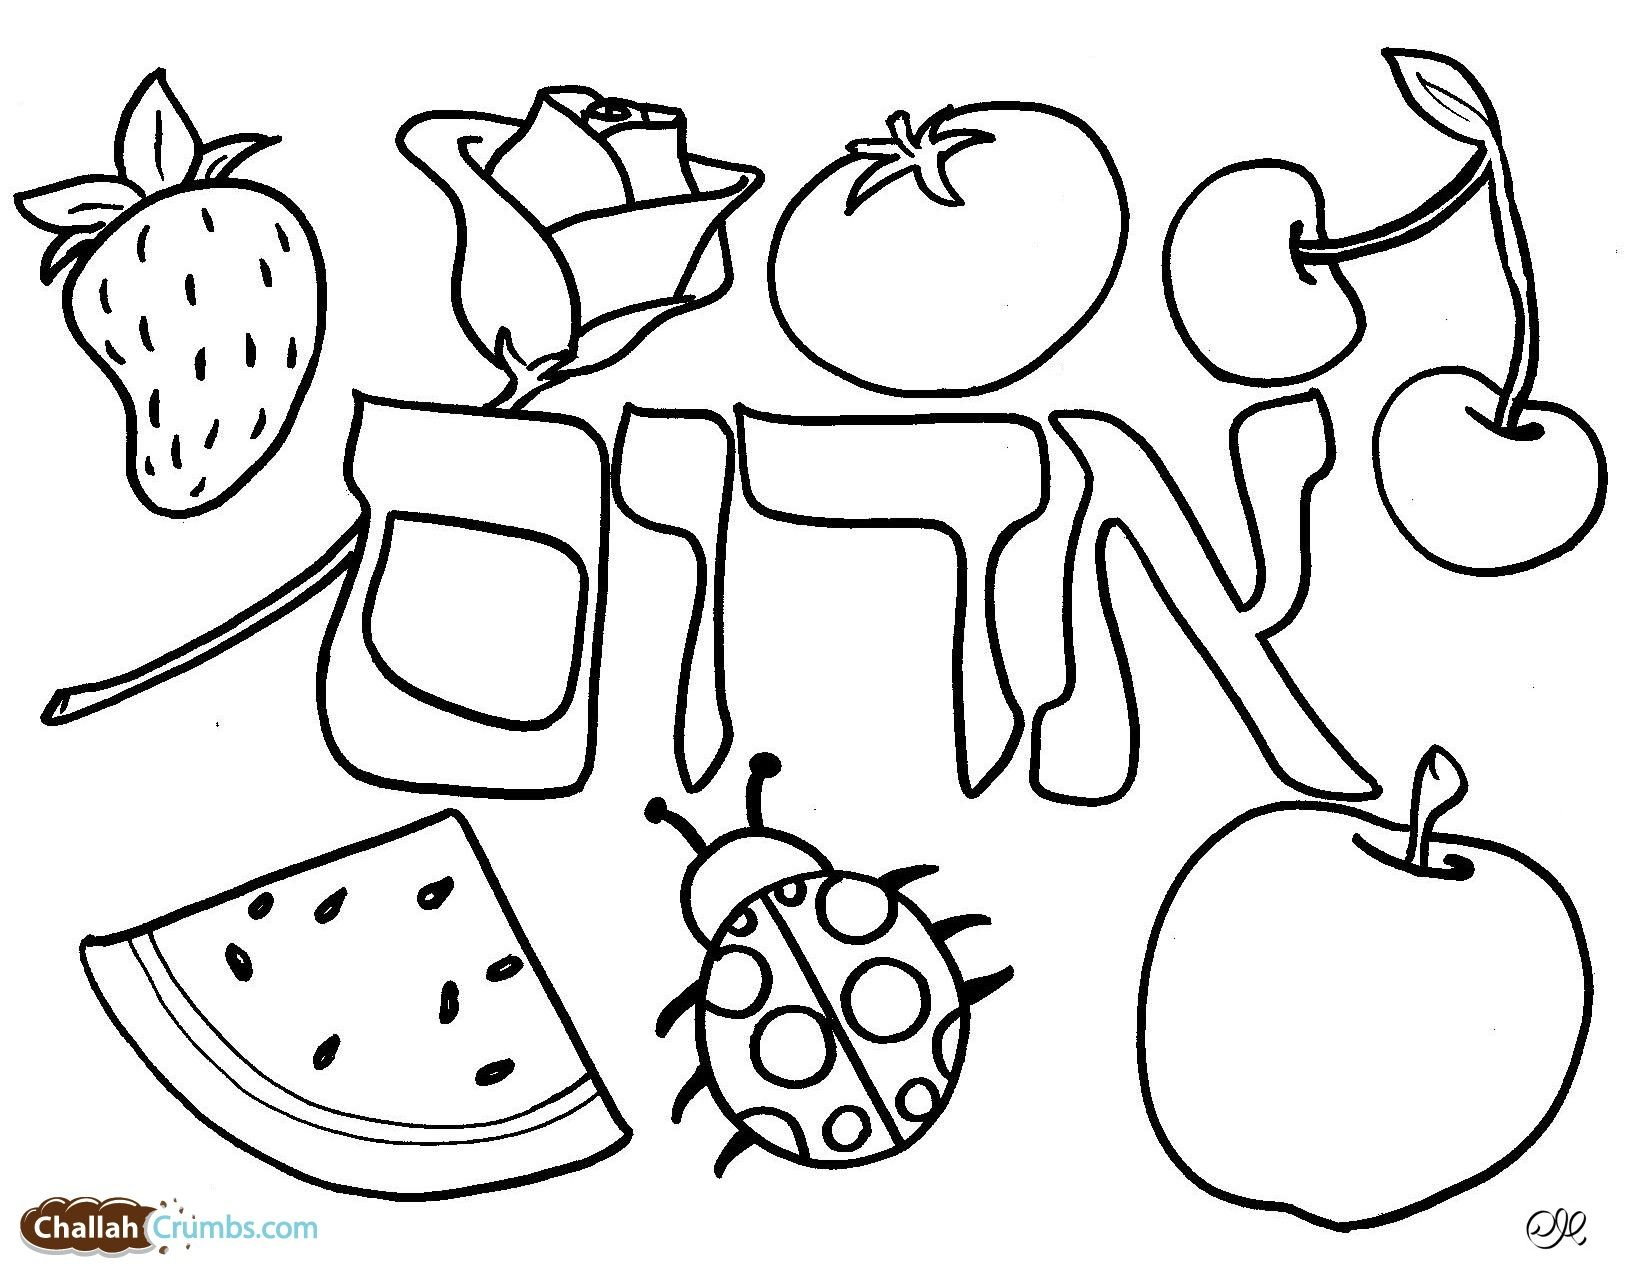 Hebrew coloring pages | לבית ספר ולגן | Pinterest